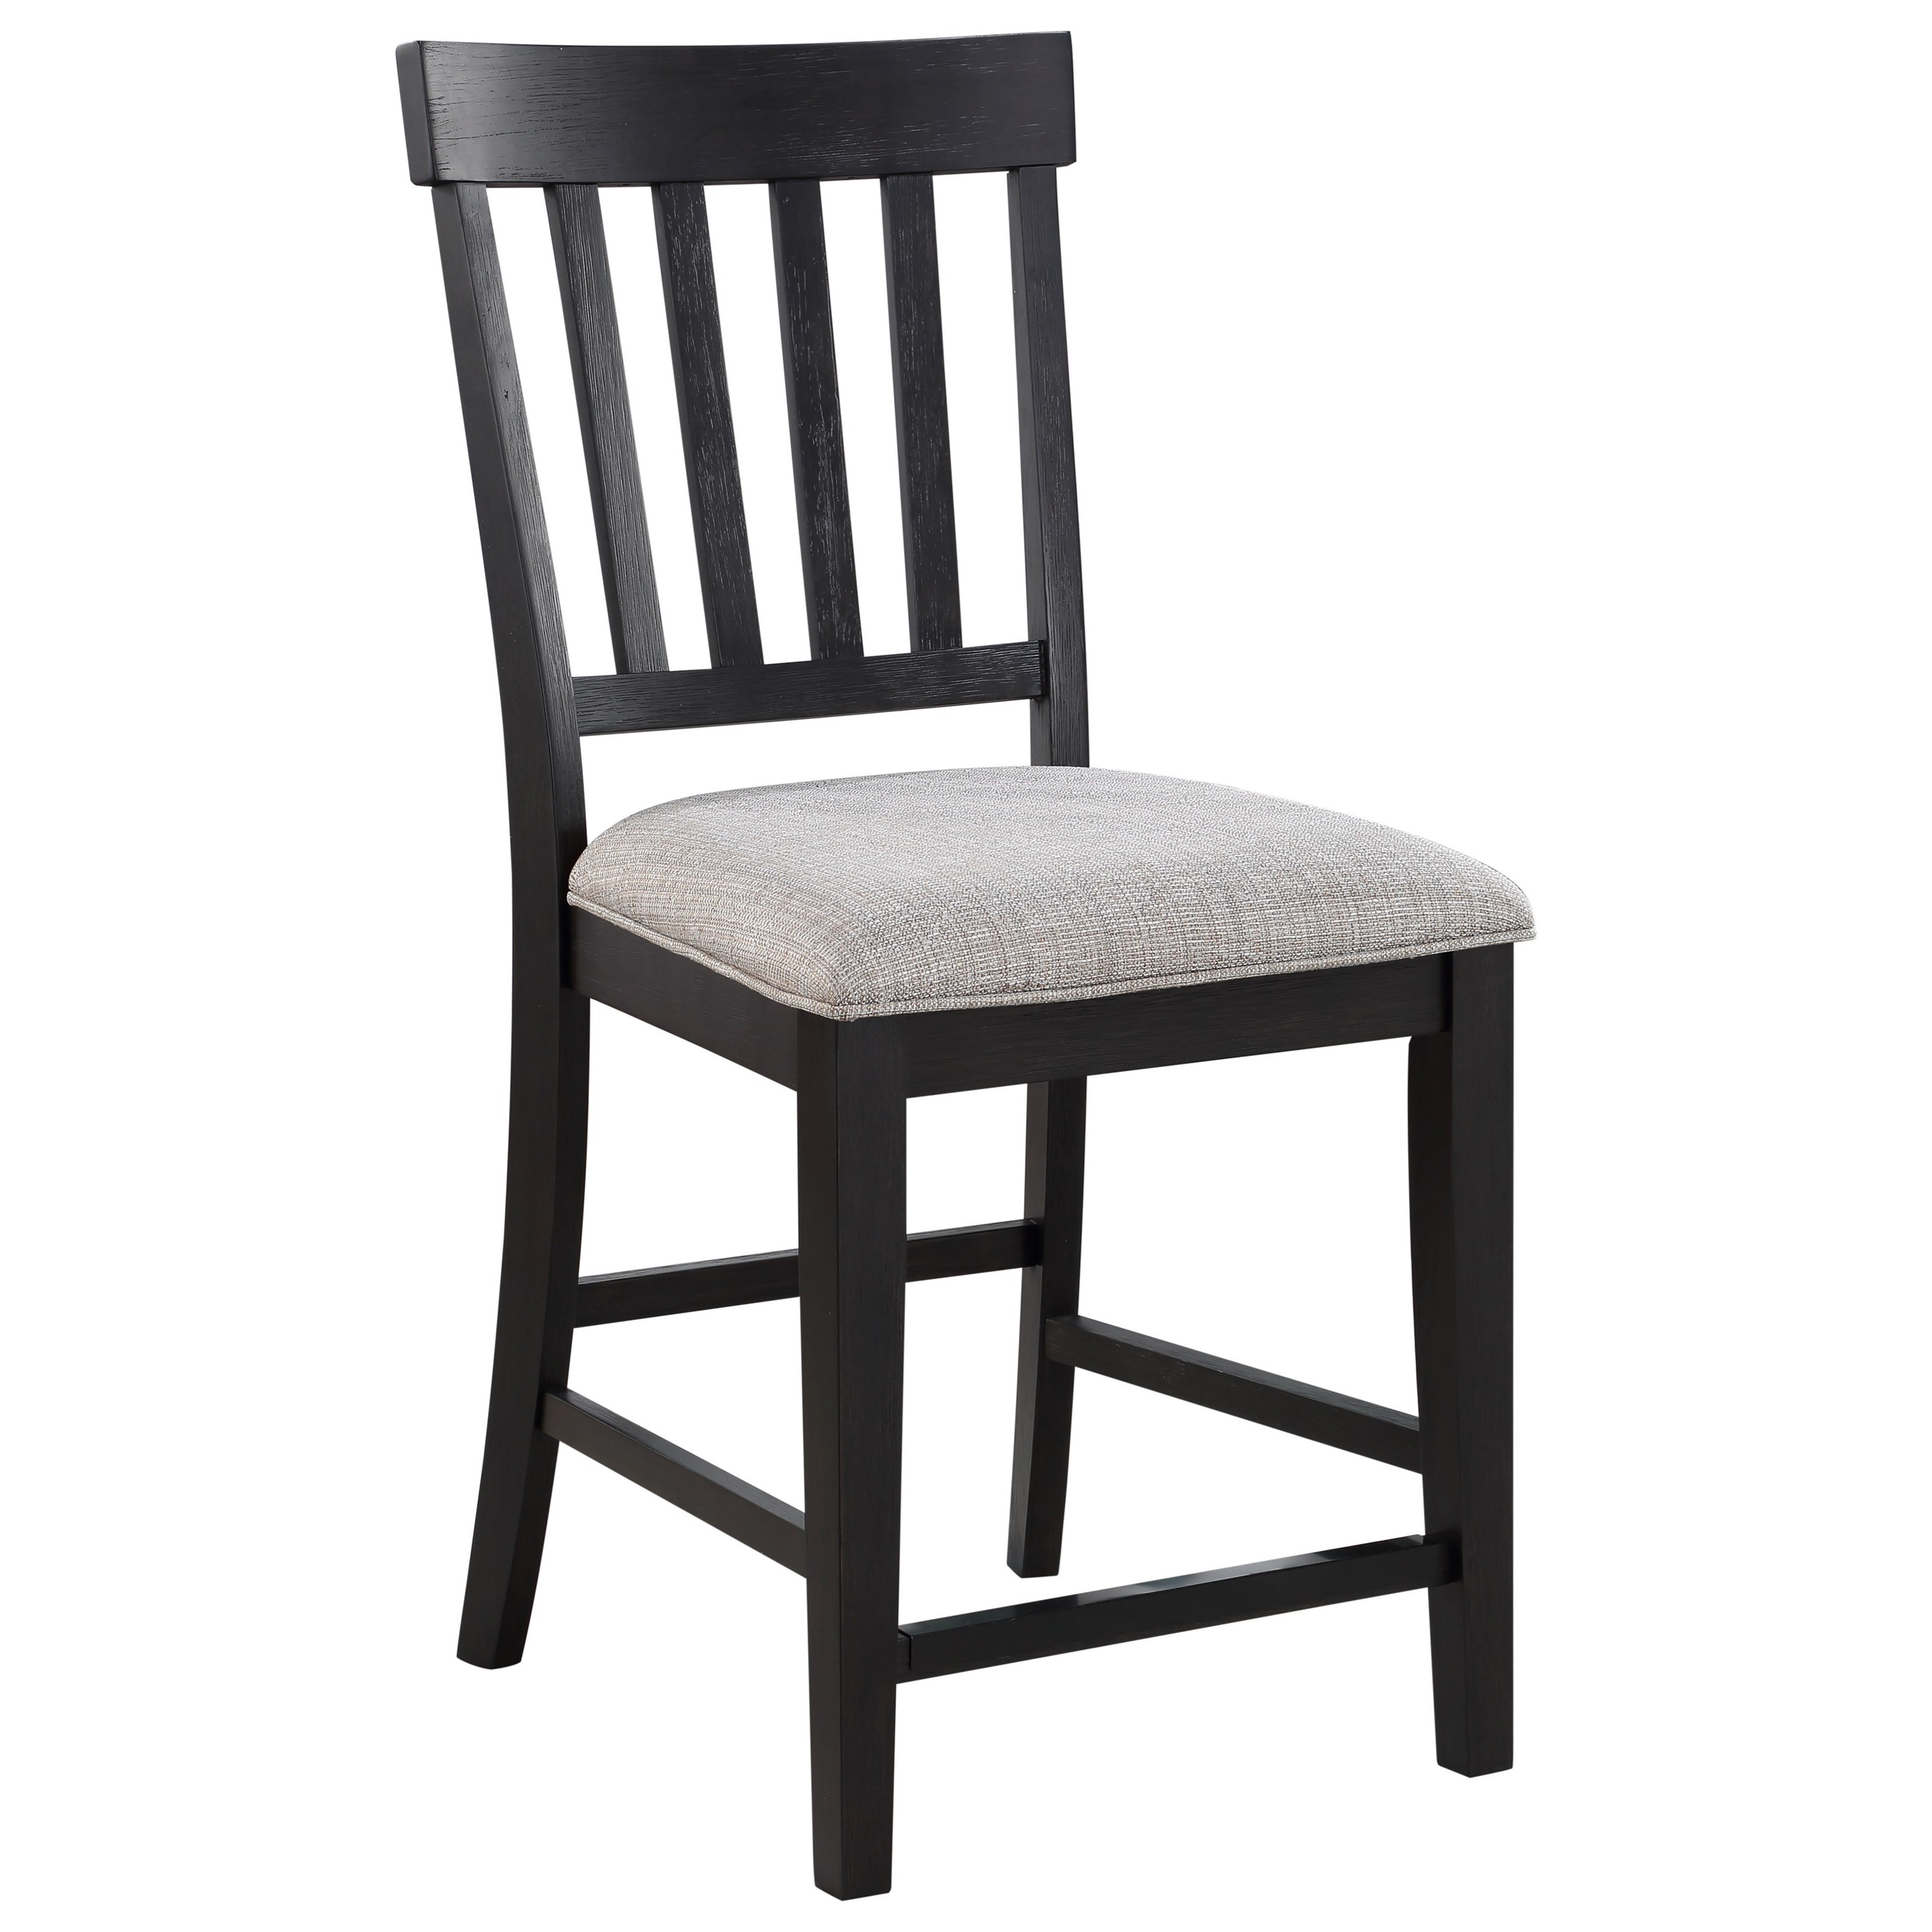 Halle Counter Height Side Chair by Steve Silver at Walker's Furniture